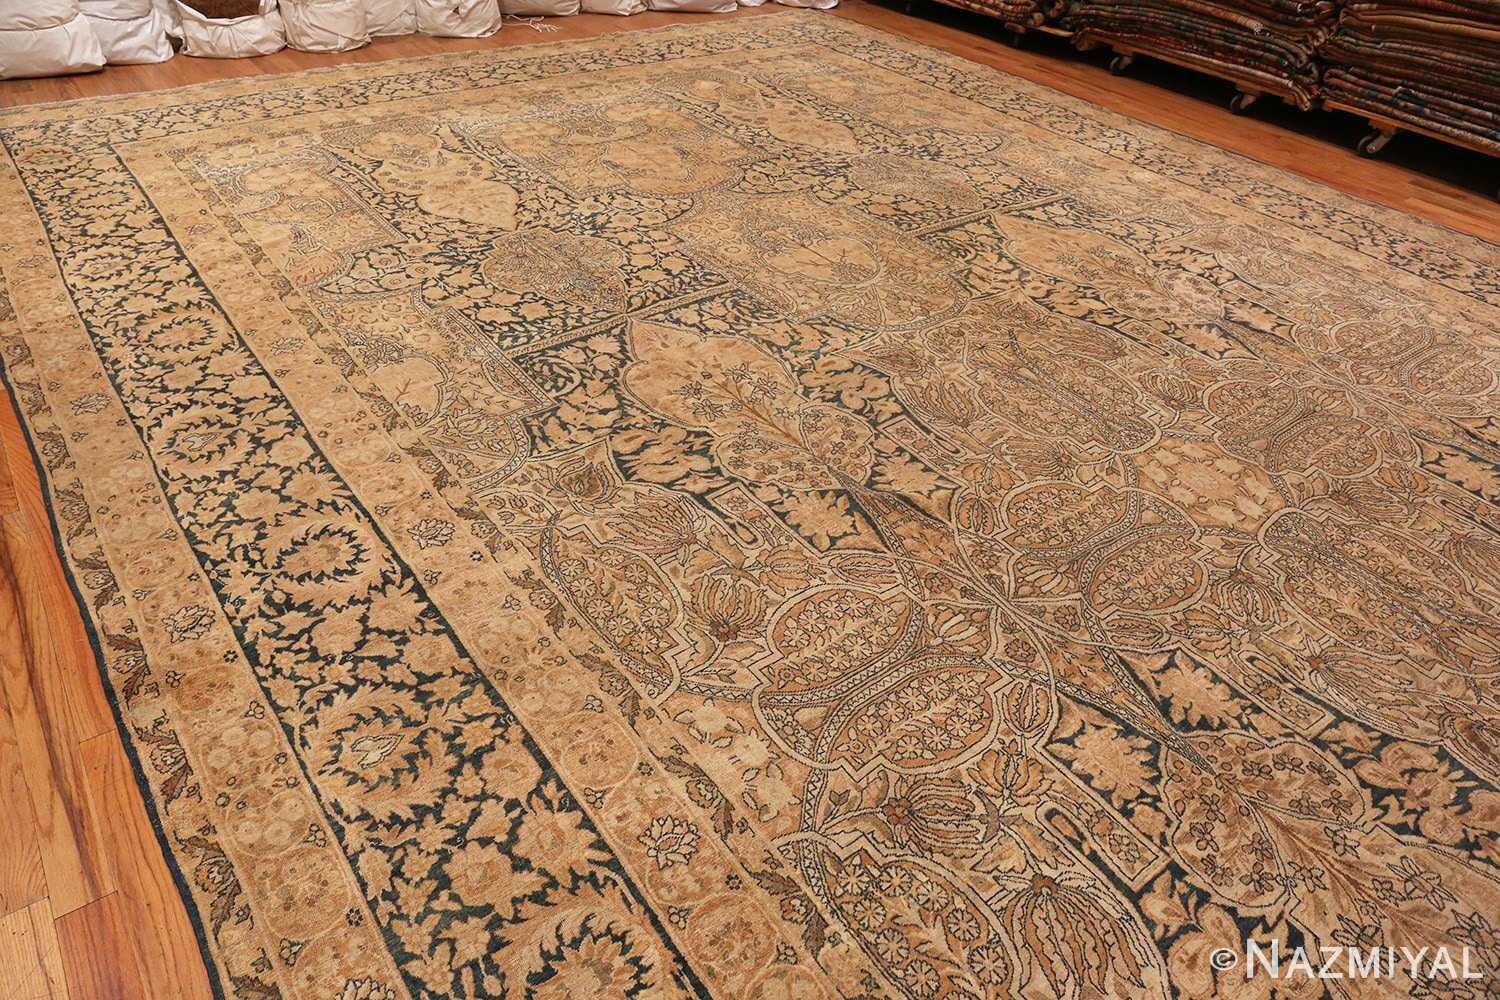 Side View Picture Of Antique Persian Kerman Rug #42703 from Nazmiyal Antique Rugs in NYC